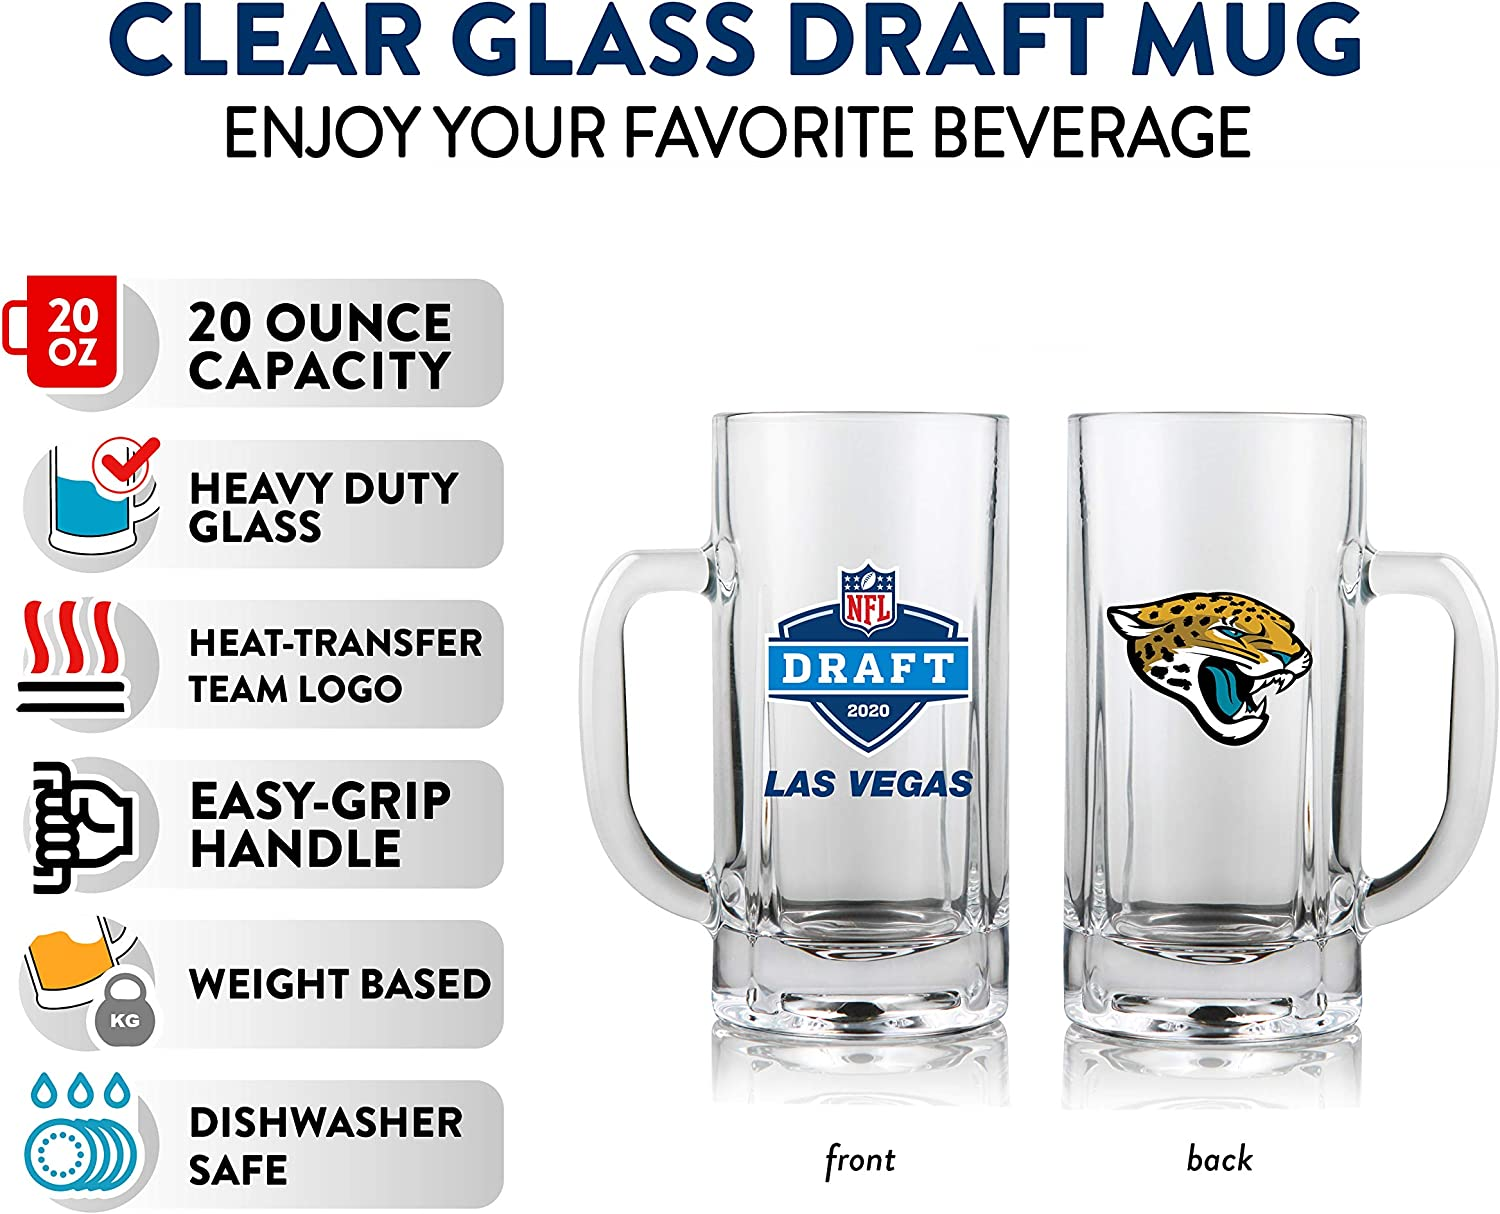 Heavy Duty Glass with Handle Weighted Base NFL Draft Mug 2020 20 Oz.